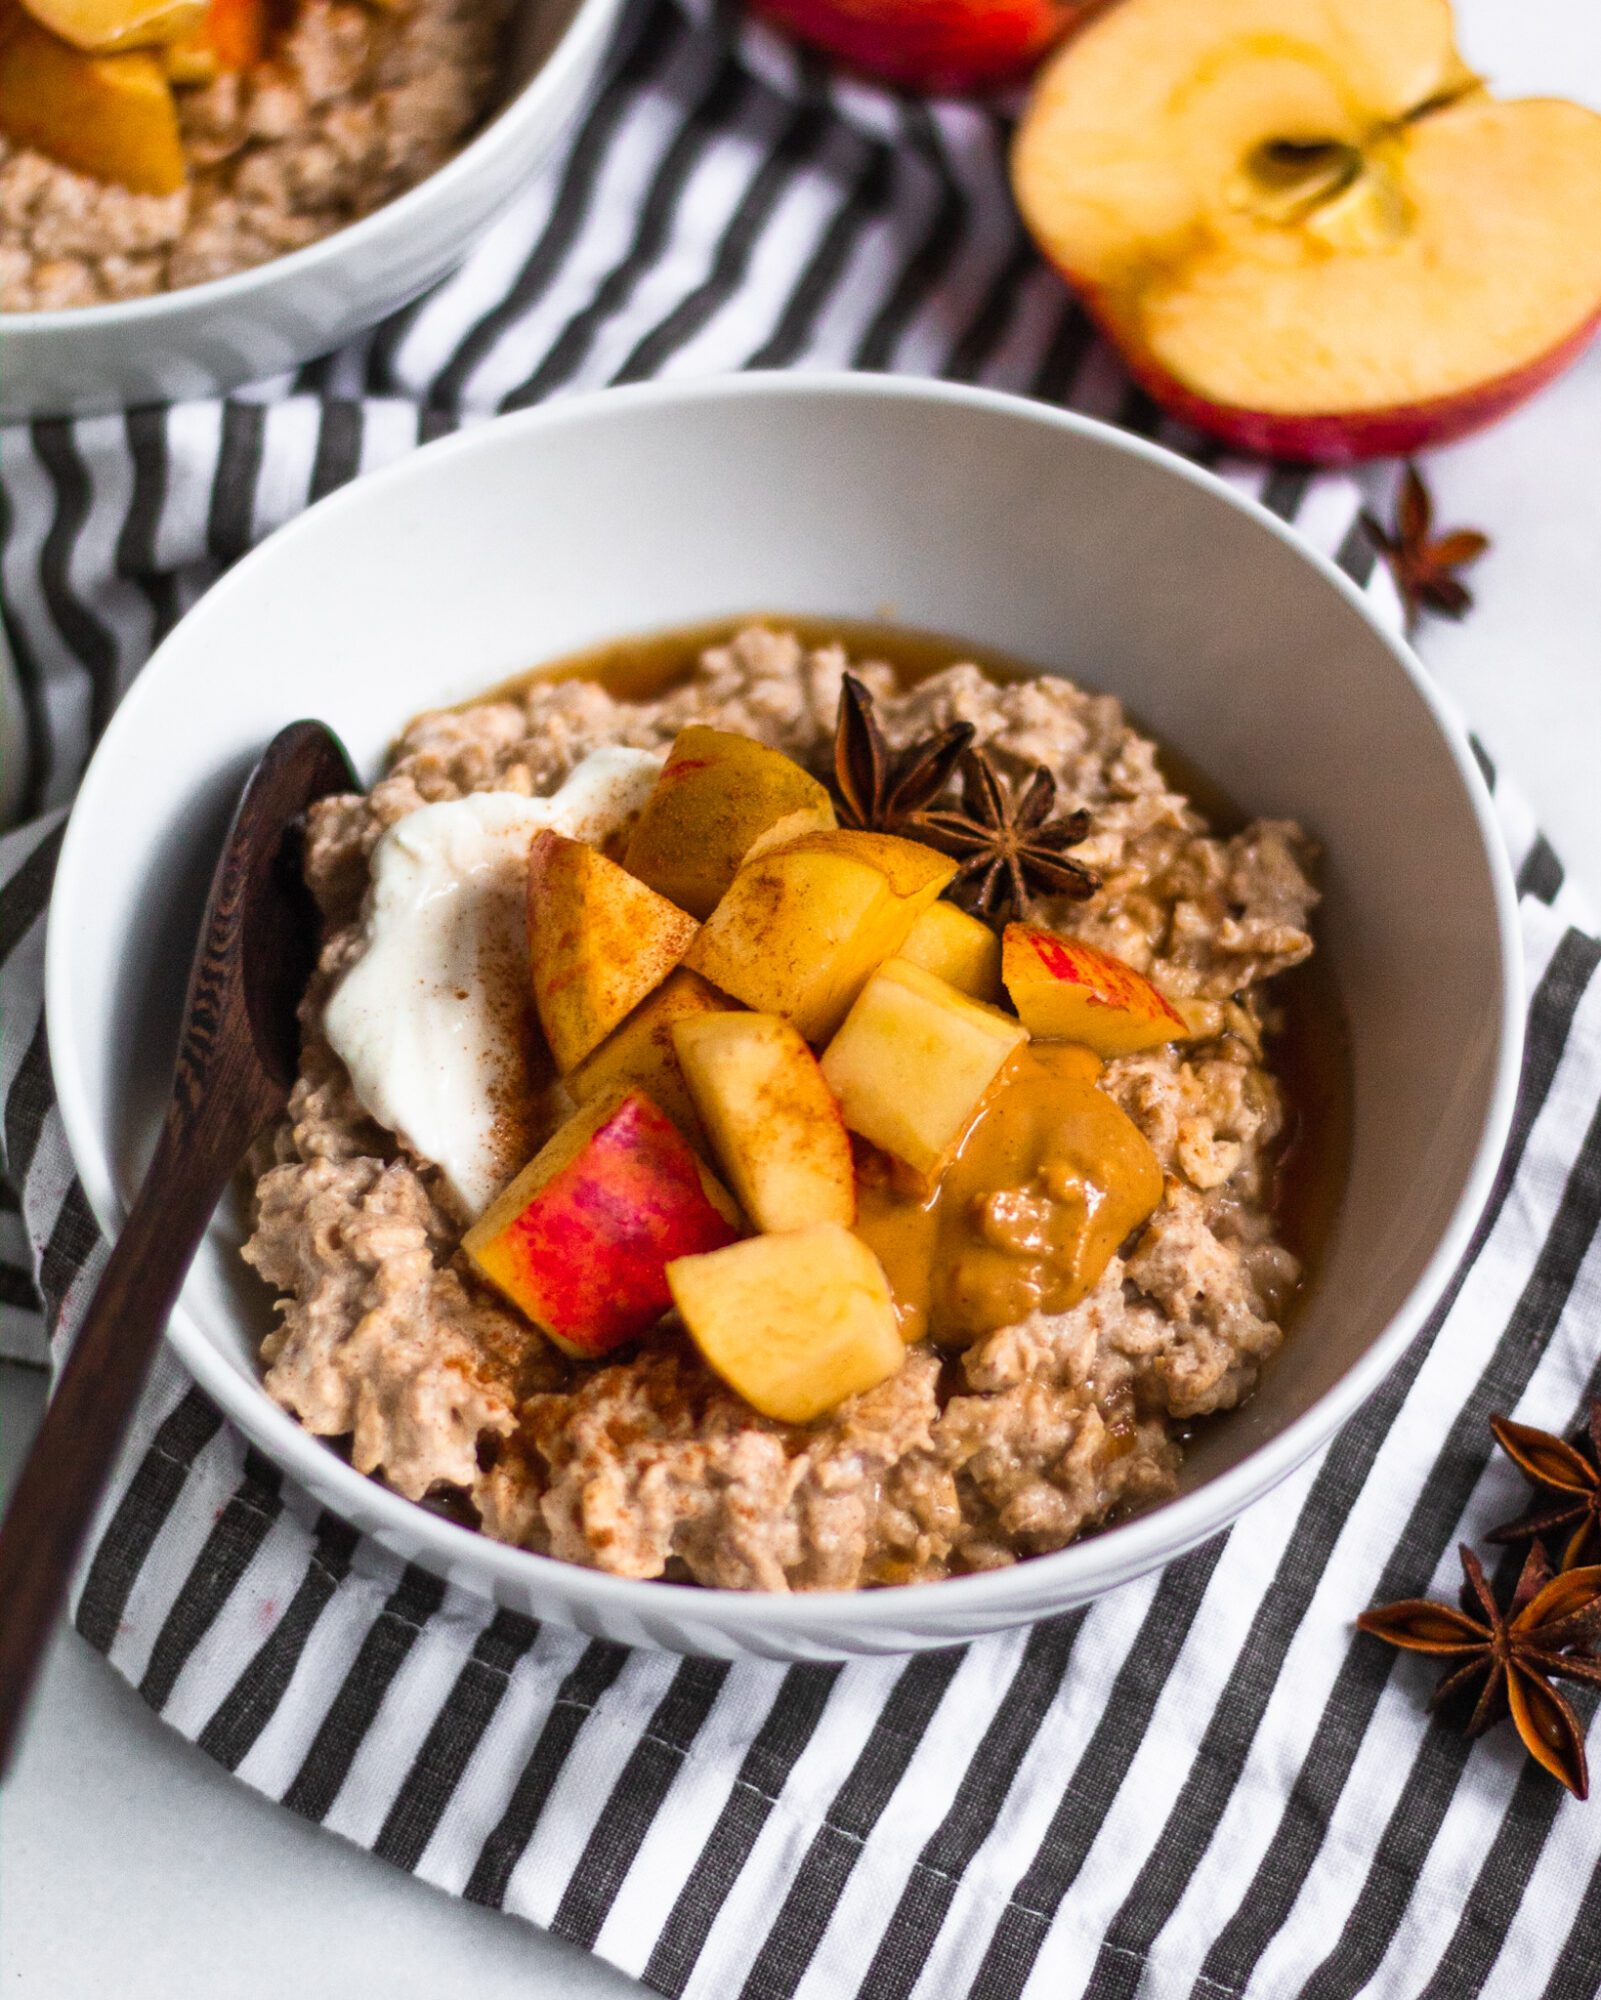 wooden spoon resting in bowl of oatmeal